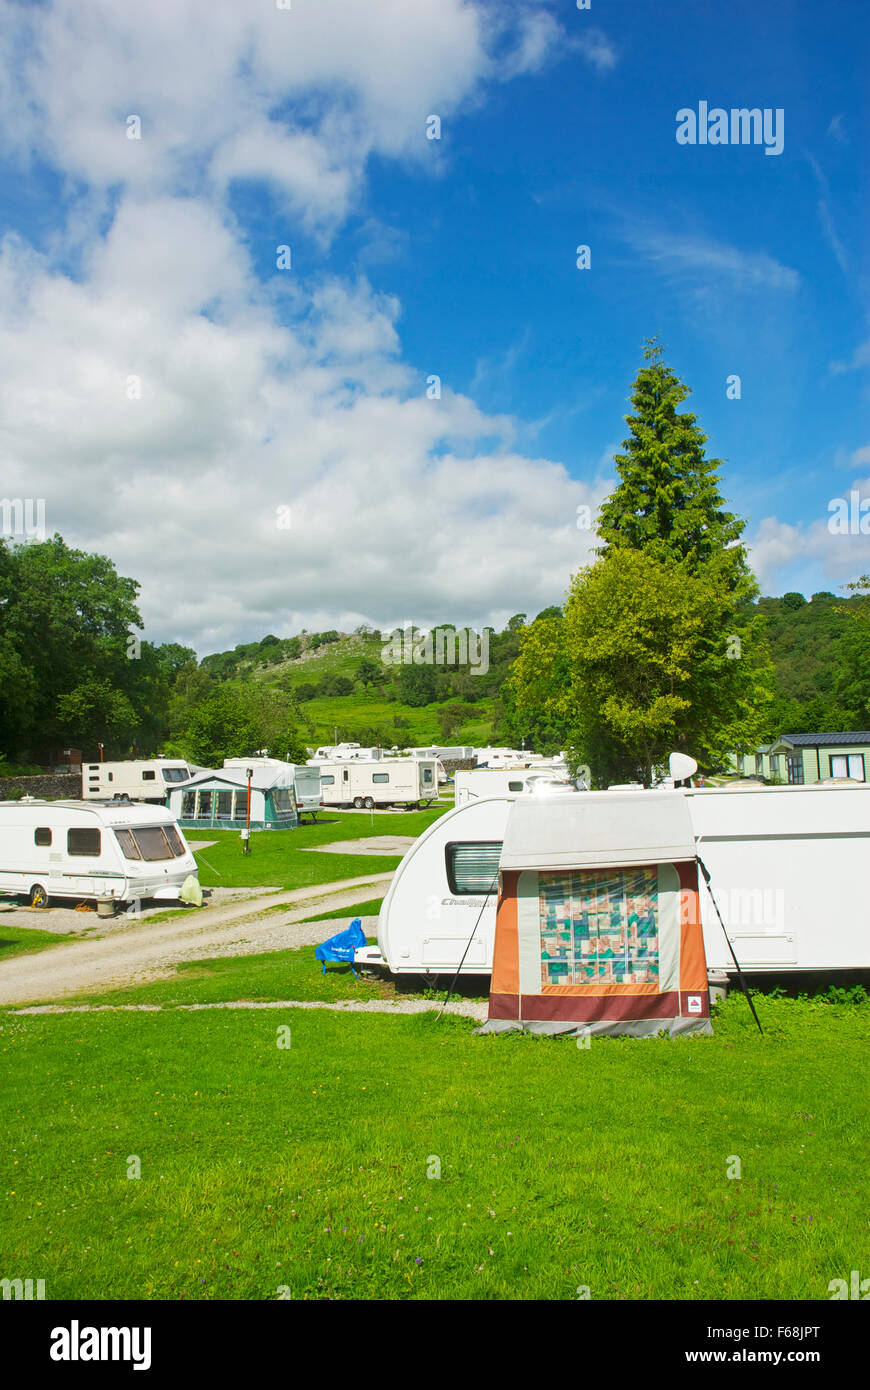 Wood Nook Campsite, Threshfield, Yorkshire Dales National Park, England UK - Stock Image